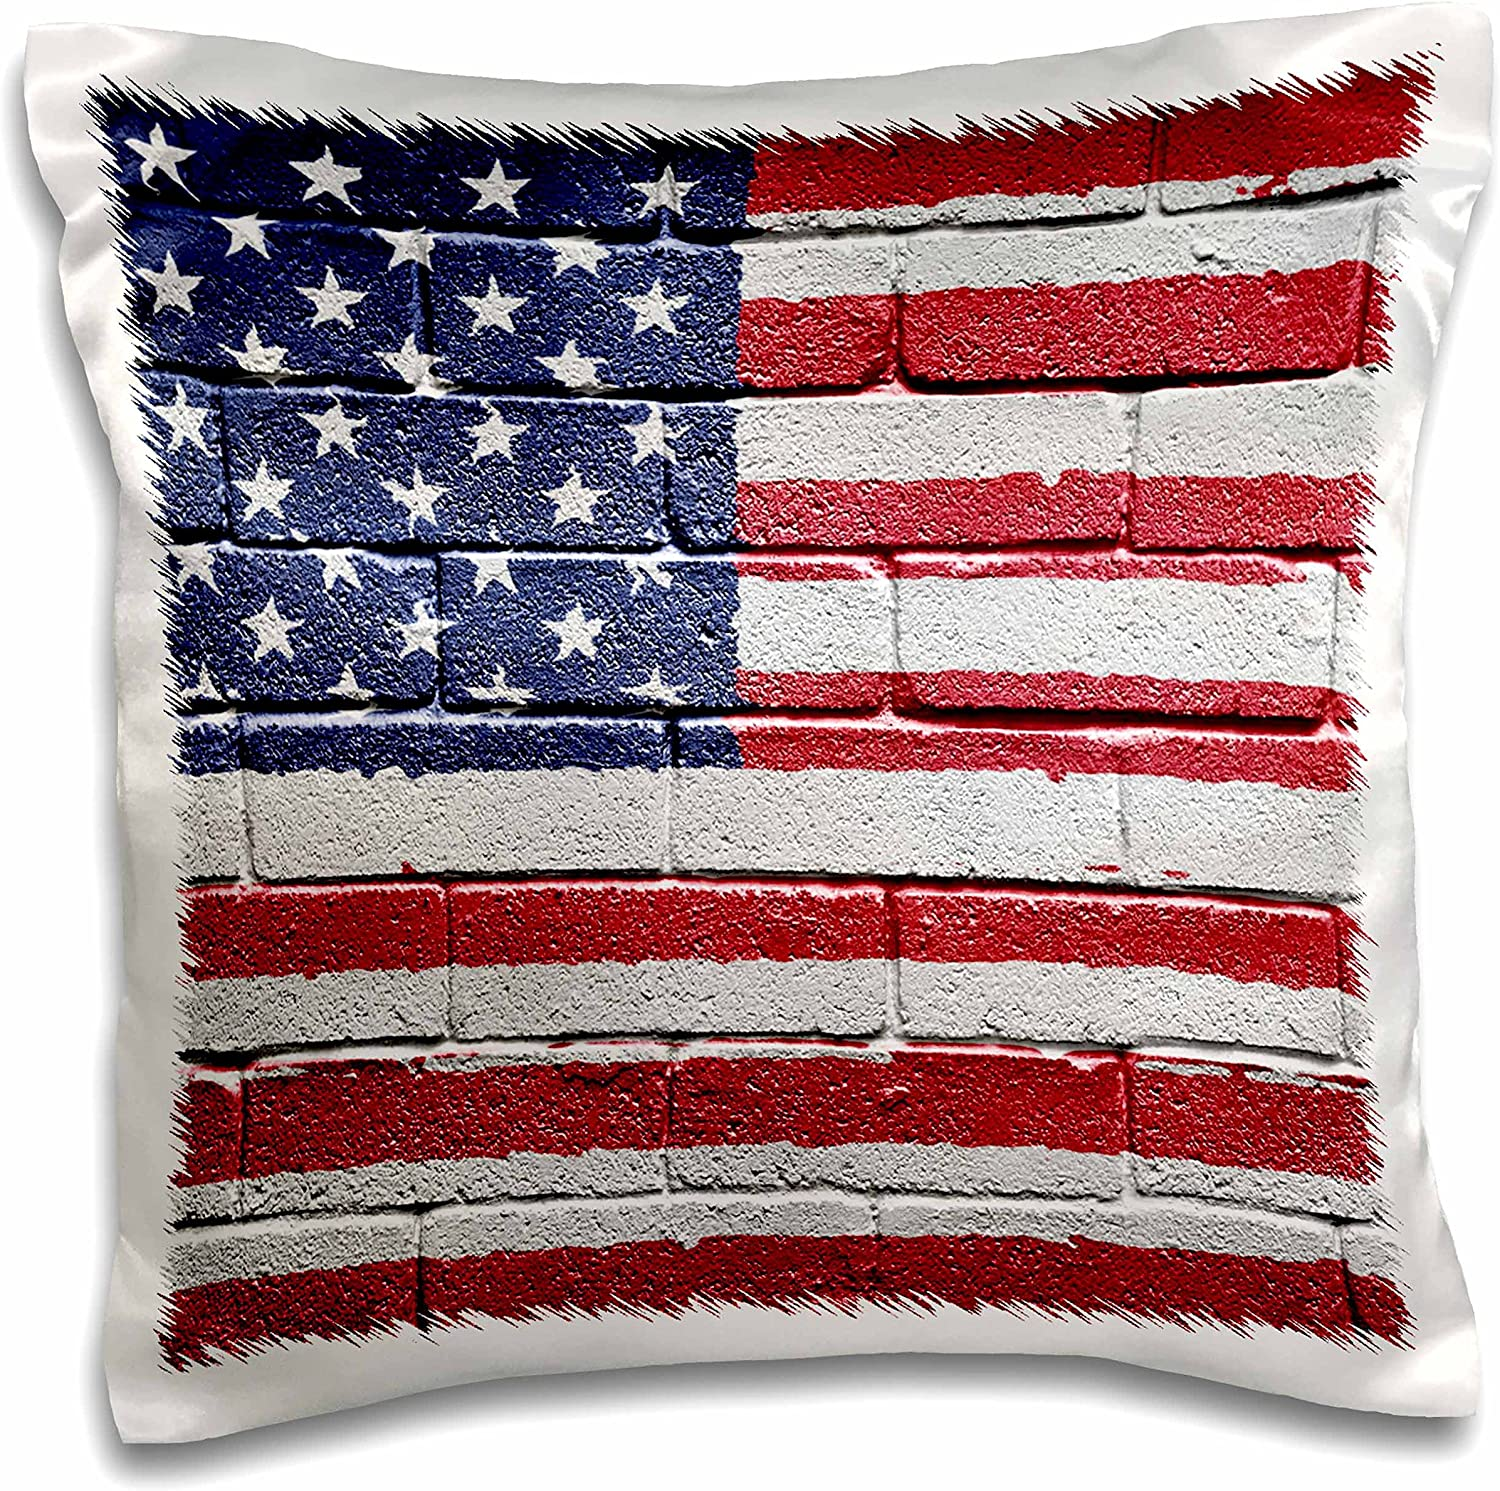 3drose Usa America American Flag On Brick Wall National Country Pillow Case 16 Inch Pc 155121 1 Arts Crafts Sewing